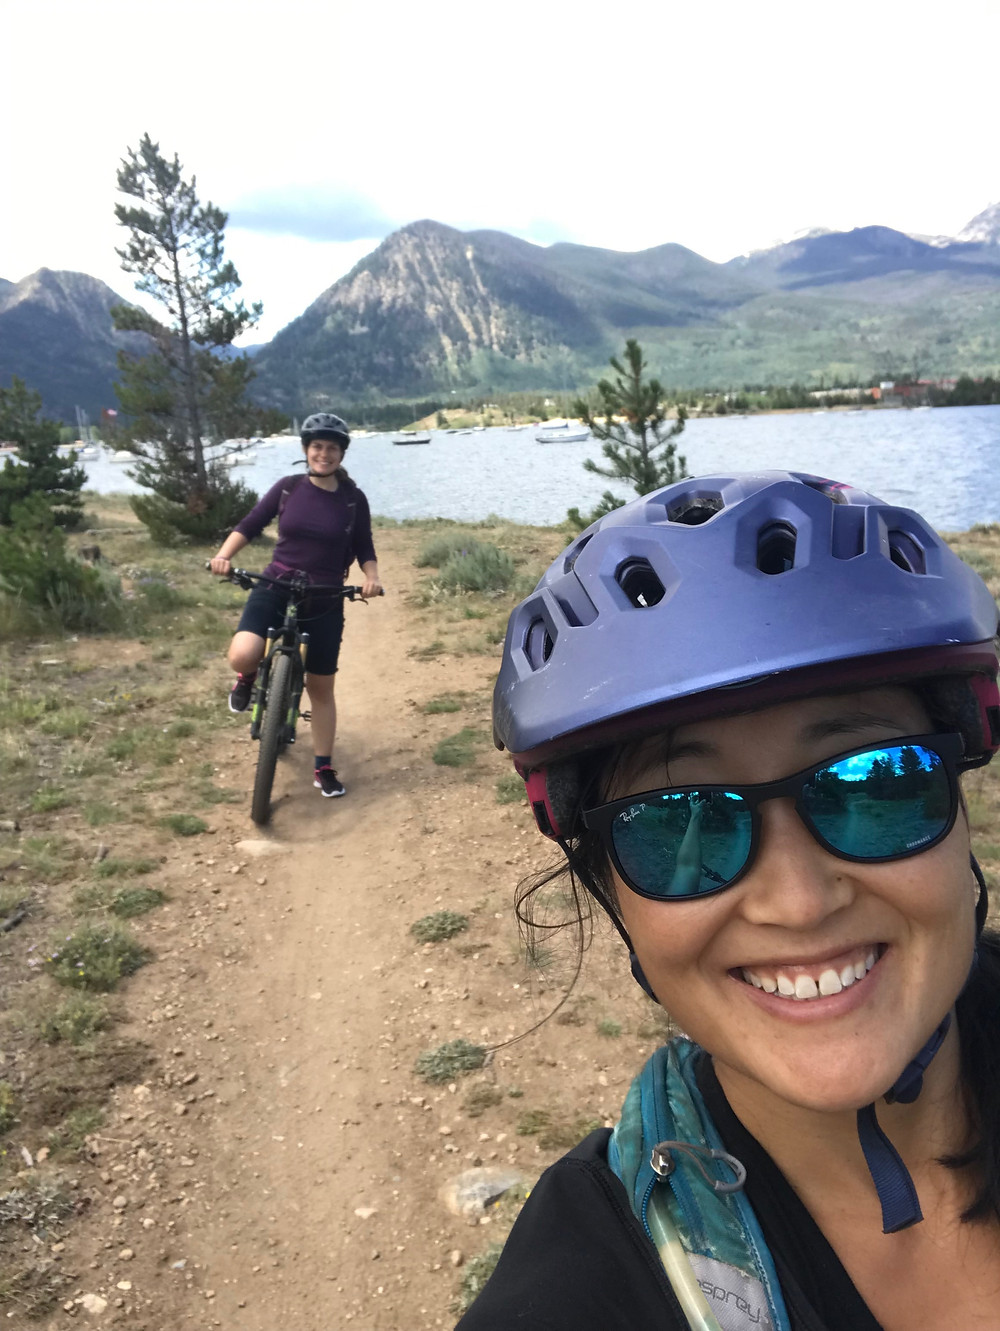 Jeanie takes a selfie in a bike helmet and sunglasses. Fran is behind on her bike. There are mountains in the background.